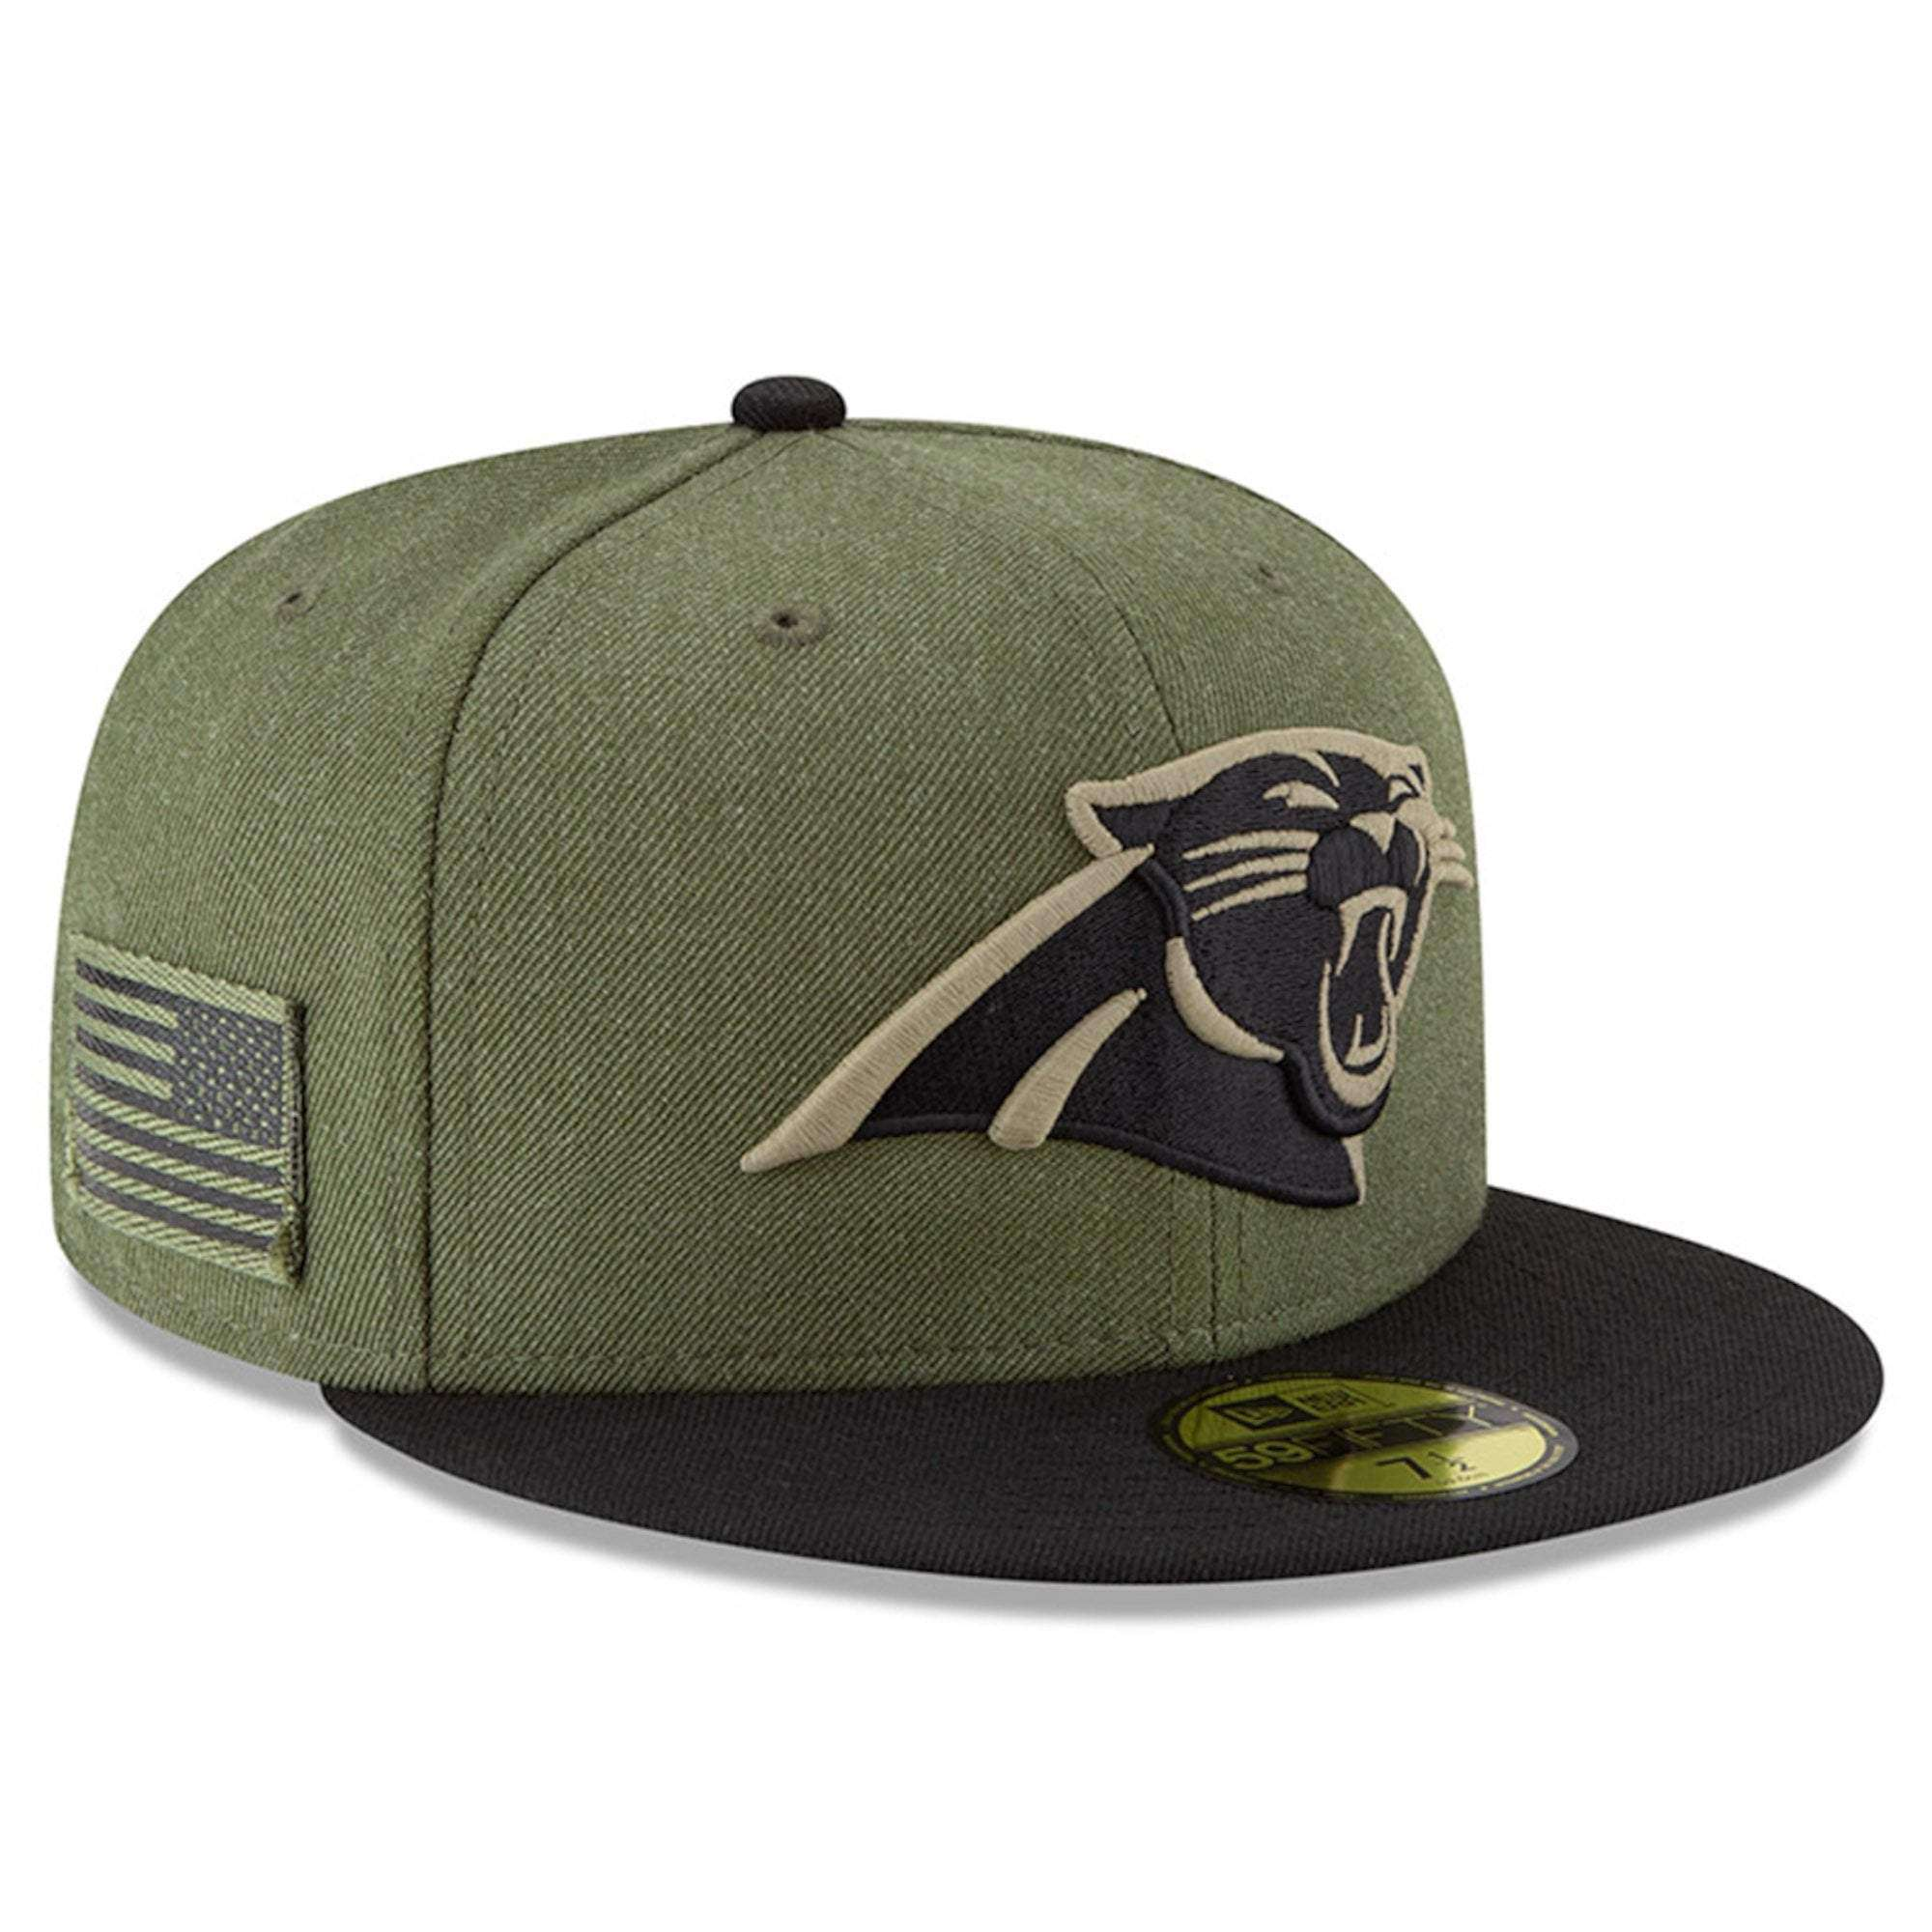 565627186 ... coupon code carolina panthers new era nfl 2018 salute to service  59fifty fitted hat olive 91243